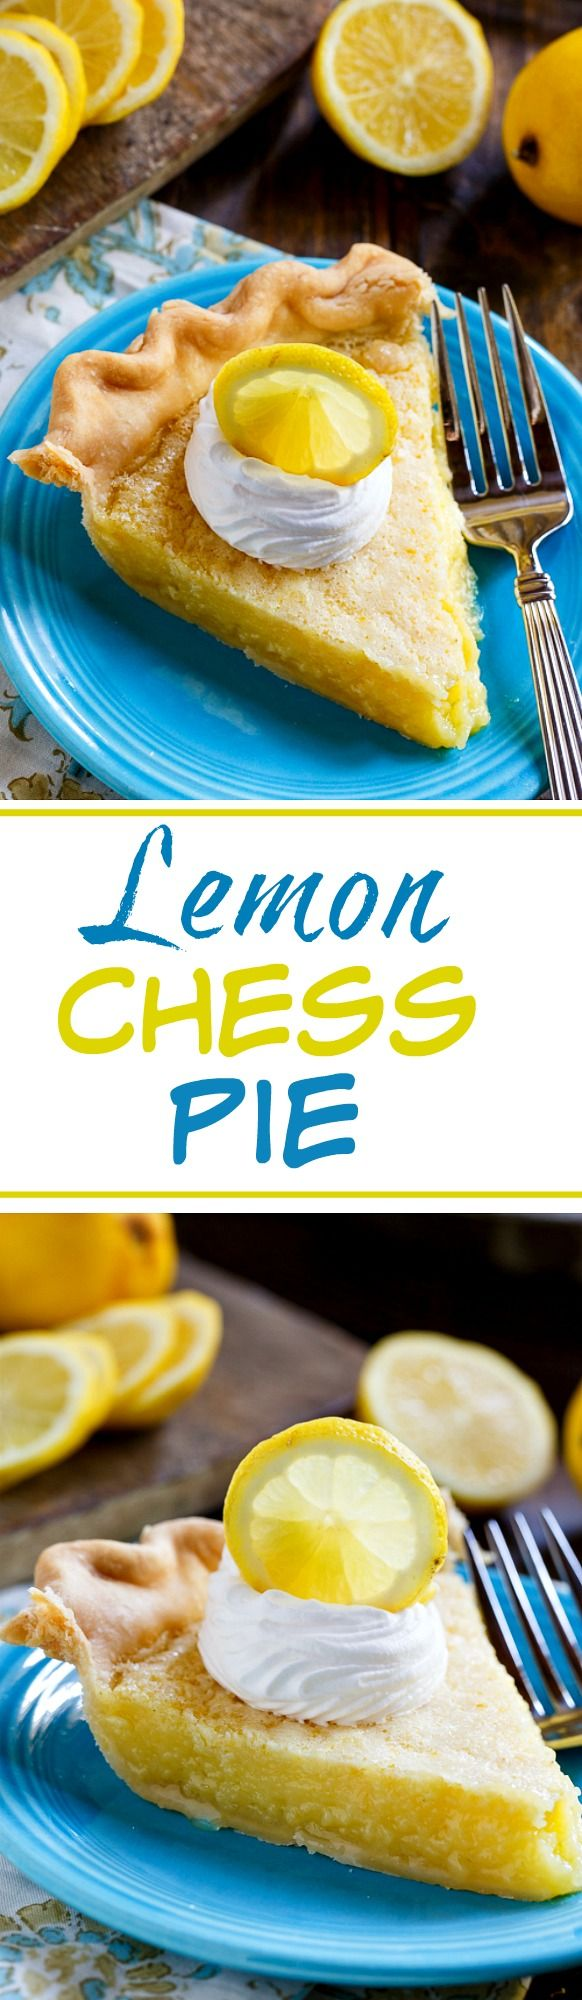 Lemon Chess Pie is an old-fashioned favorite that's perfect for potlucks and picnics.